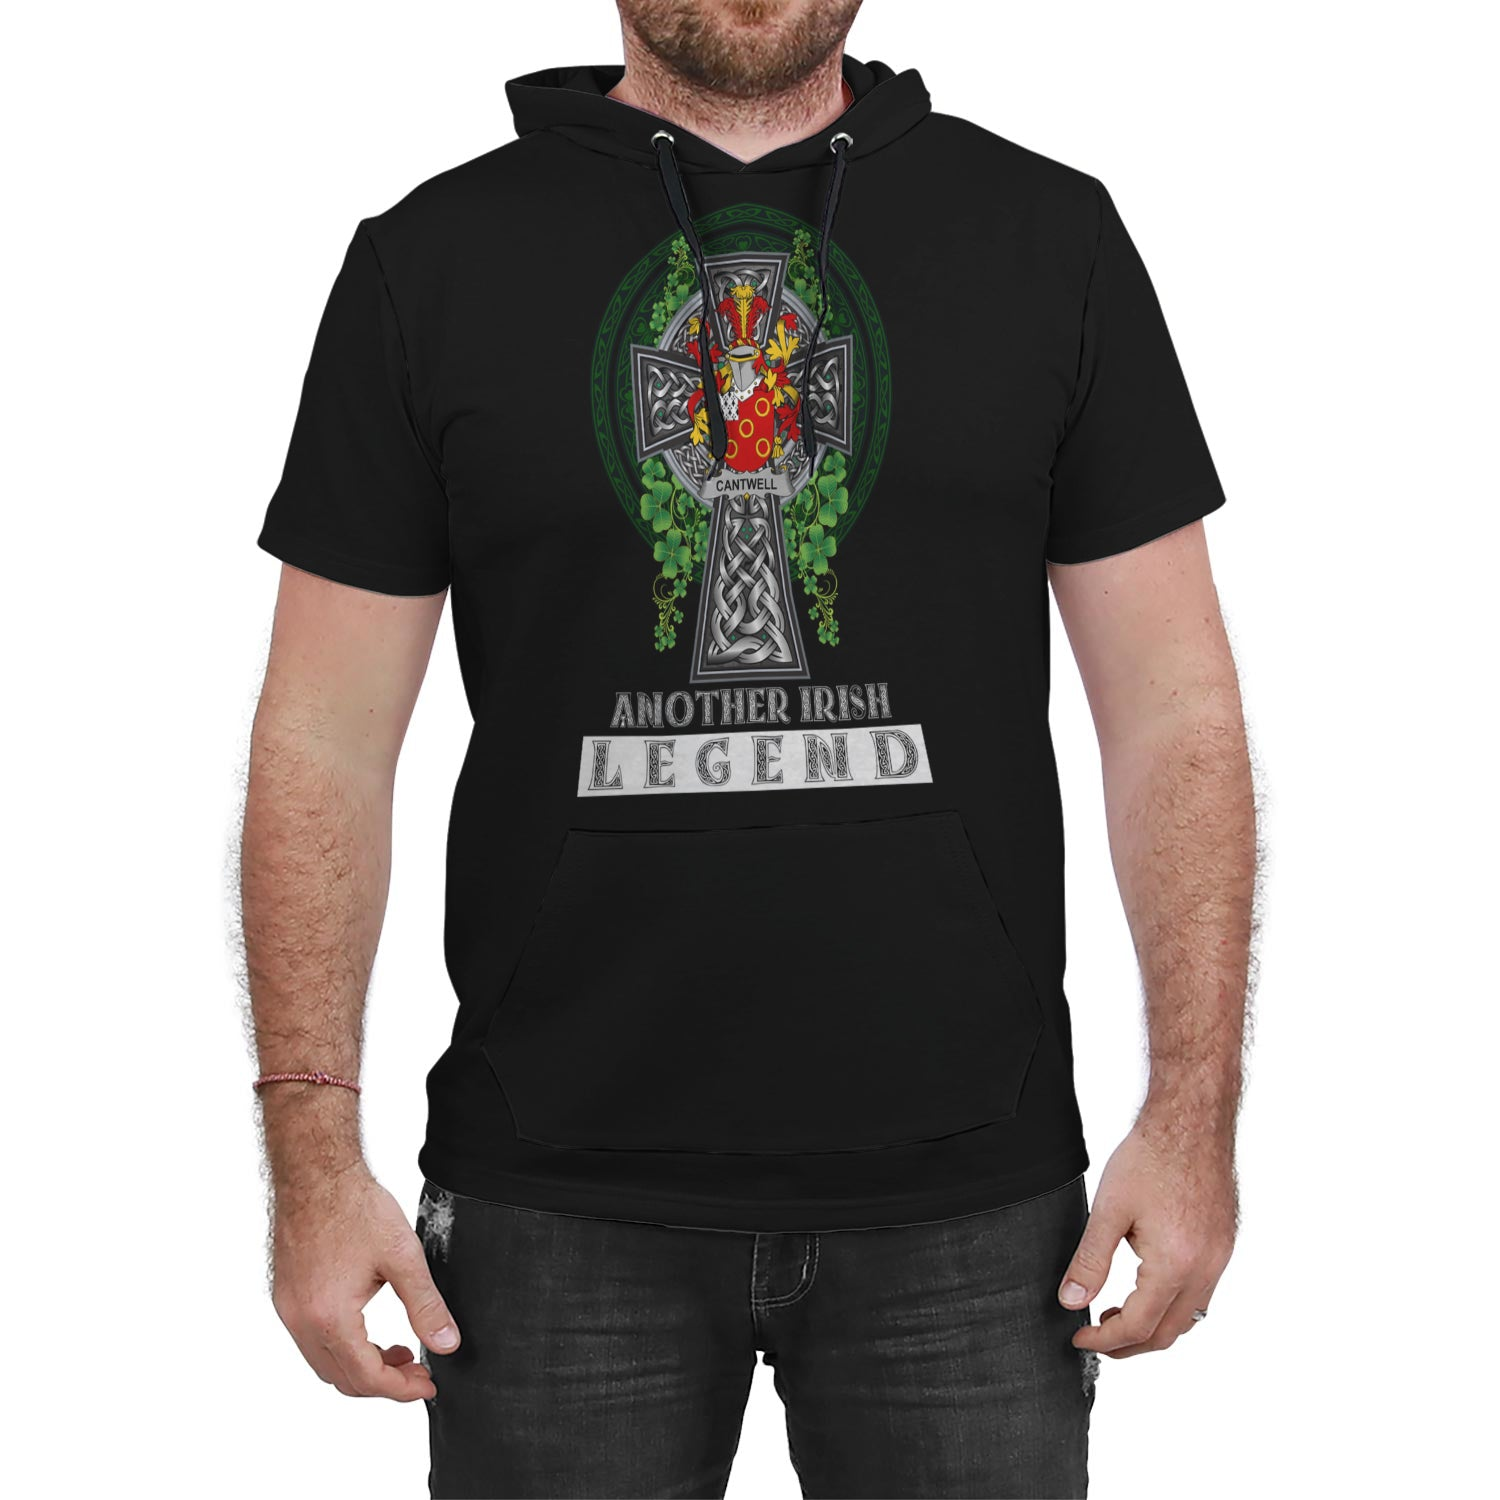 Cantwell Ireland Hooded T-Shirt Irish Legend | Clothing | Over 1400 Crests